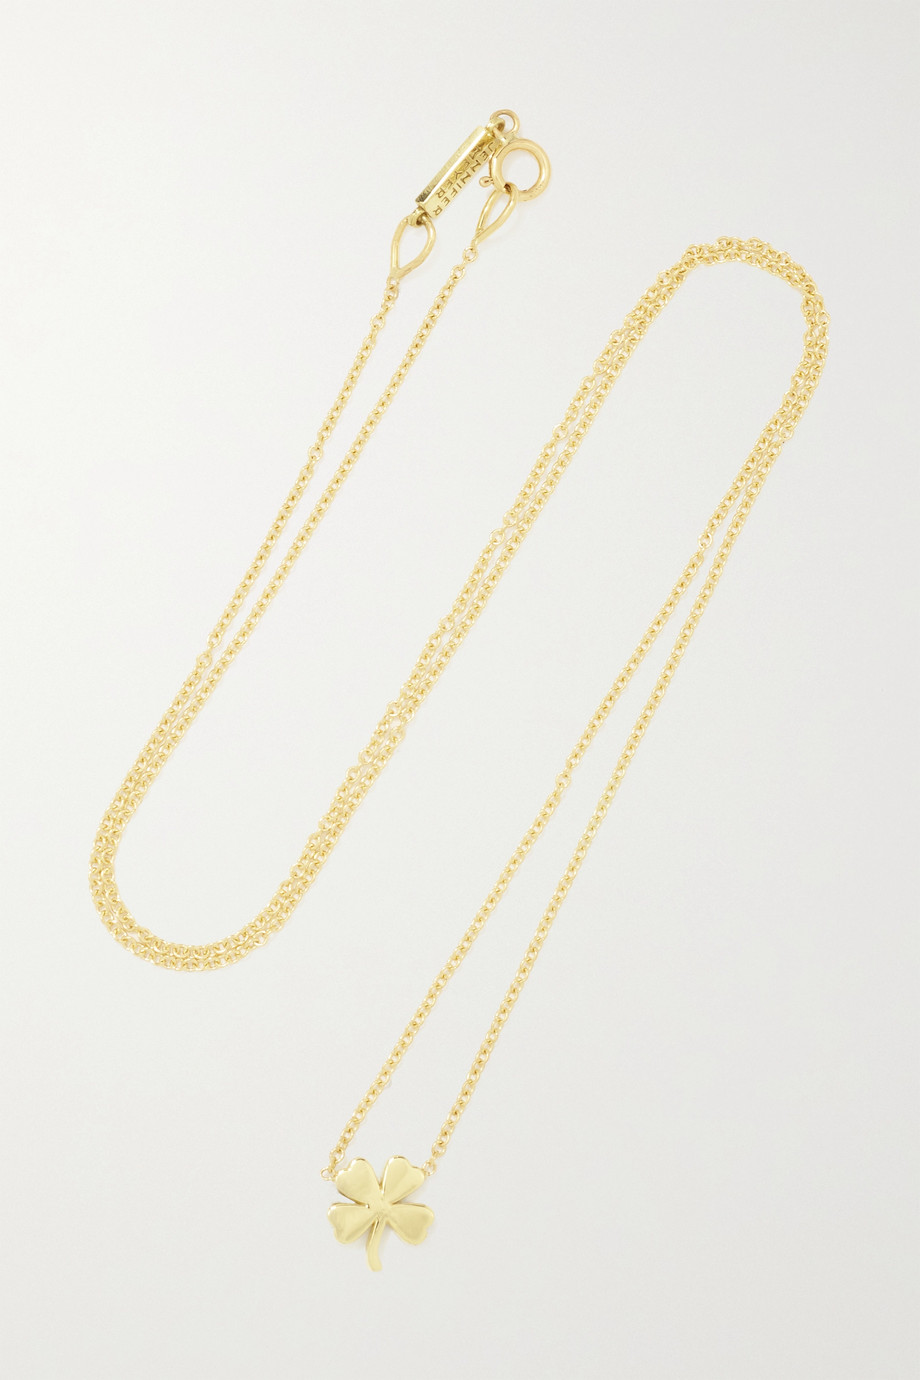 JENNIFER MEYER Mini Clover 18-karat gold necklace